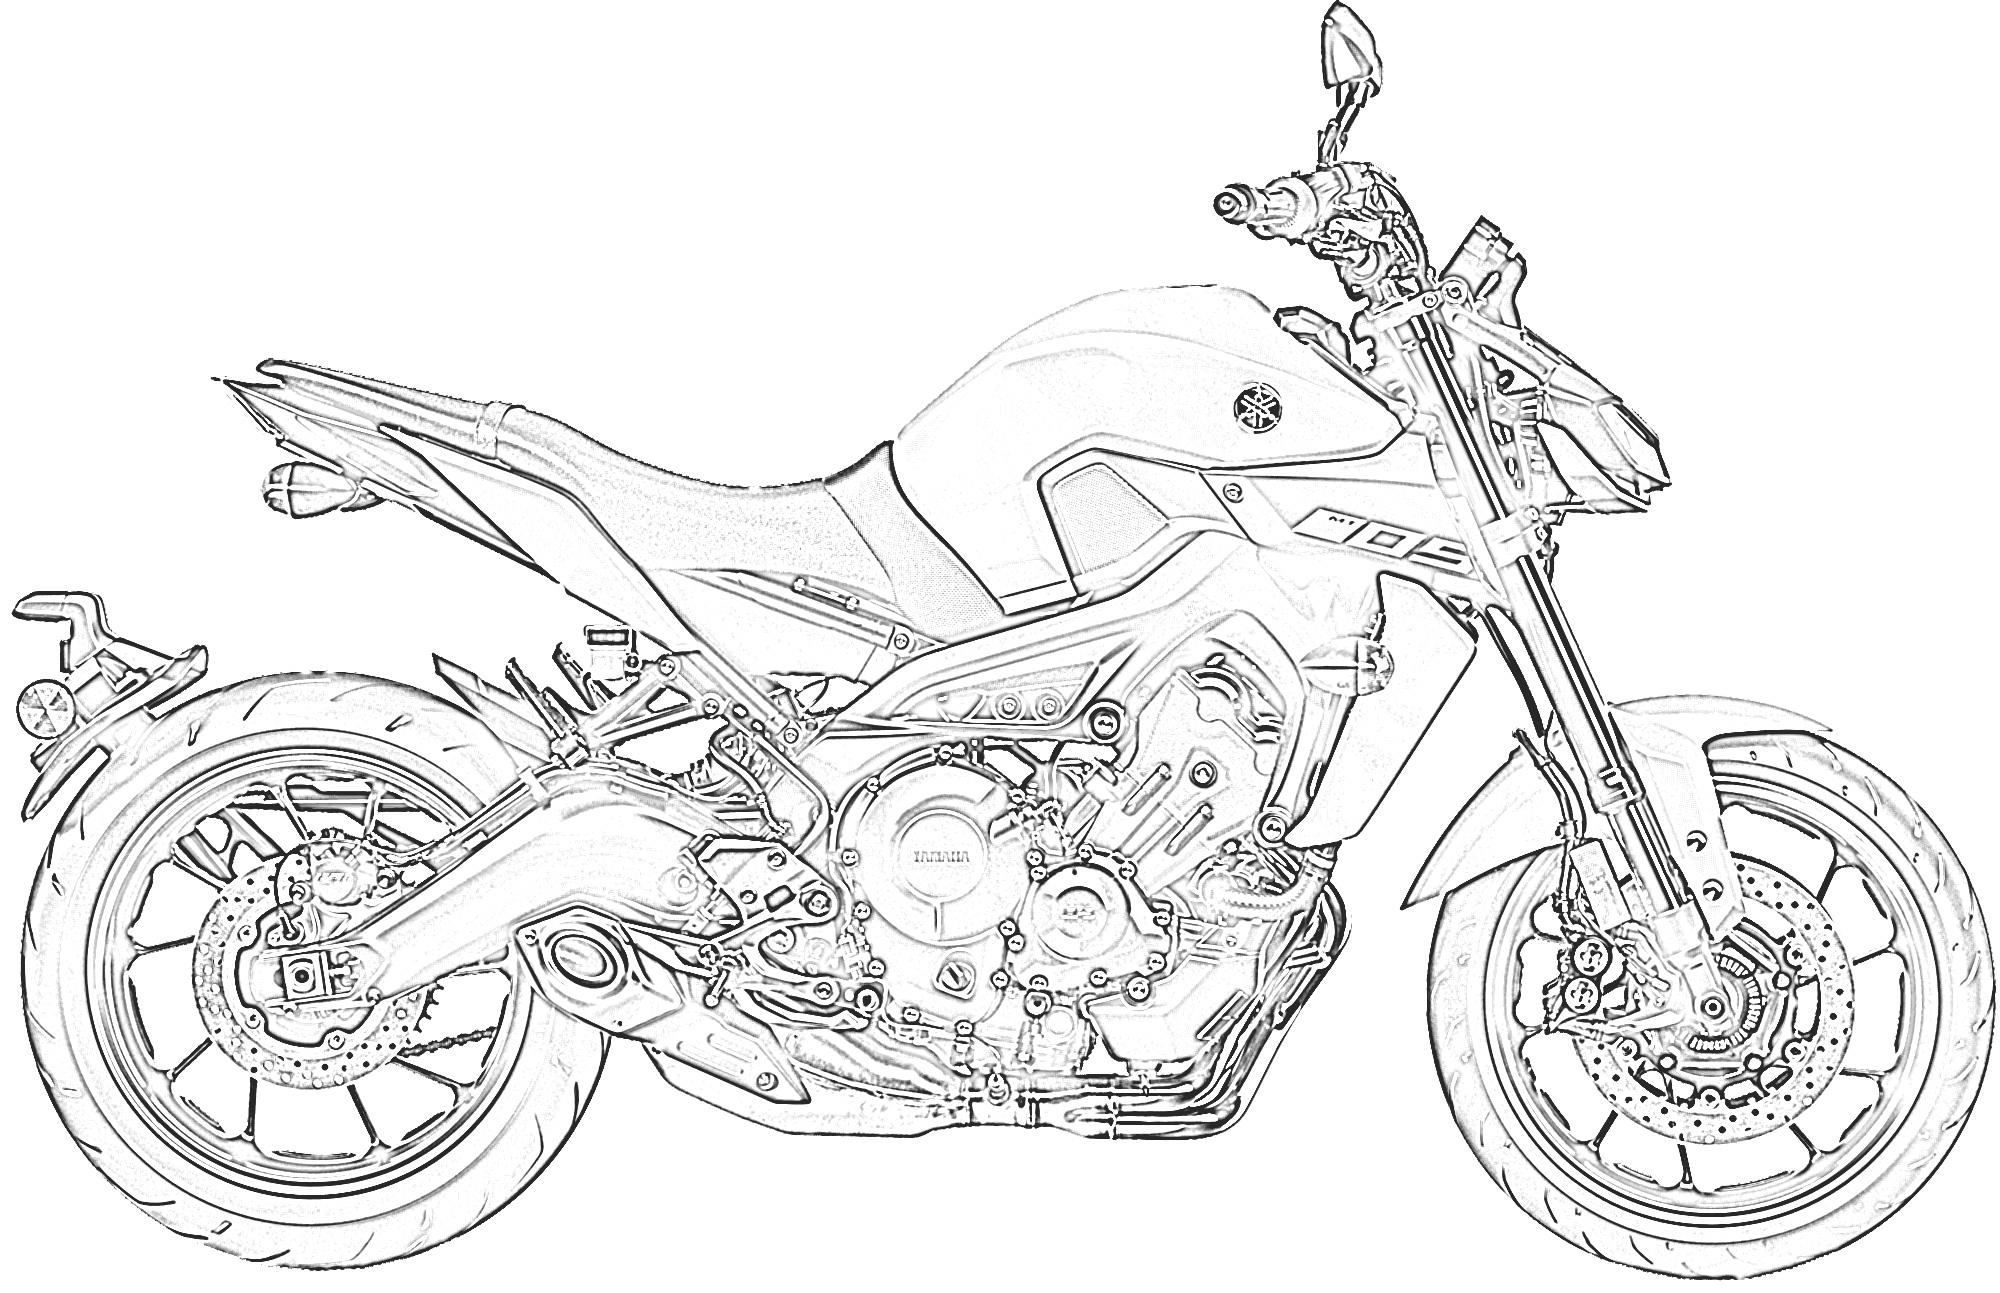 coloring motorcycle pages coloring pages motorcycle coloring pages free and printable pages coloring motorcycle